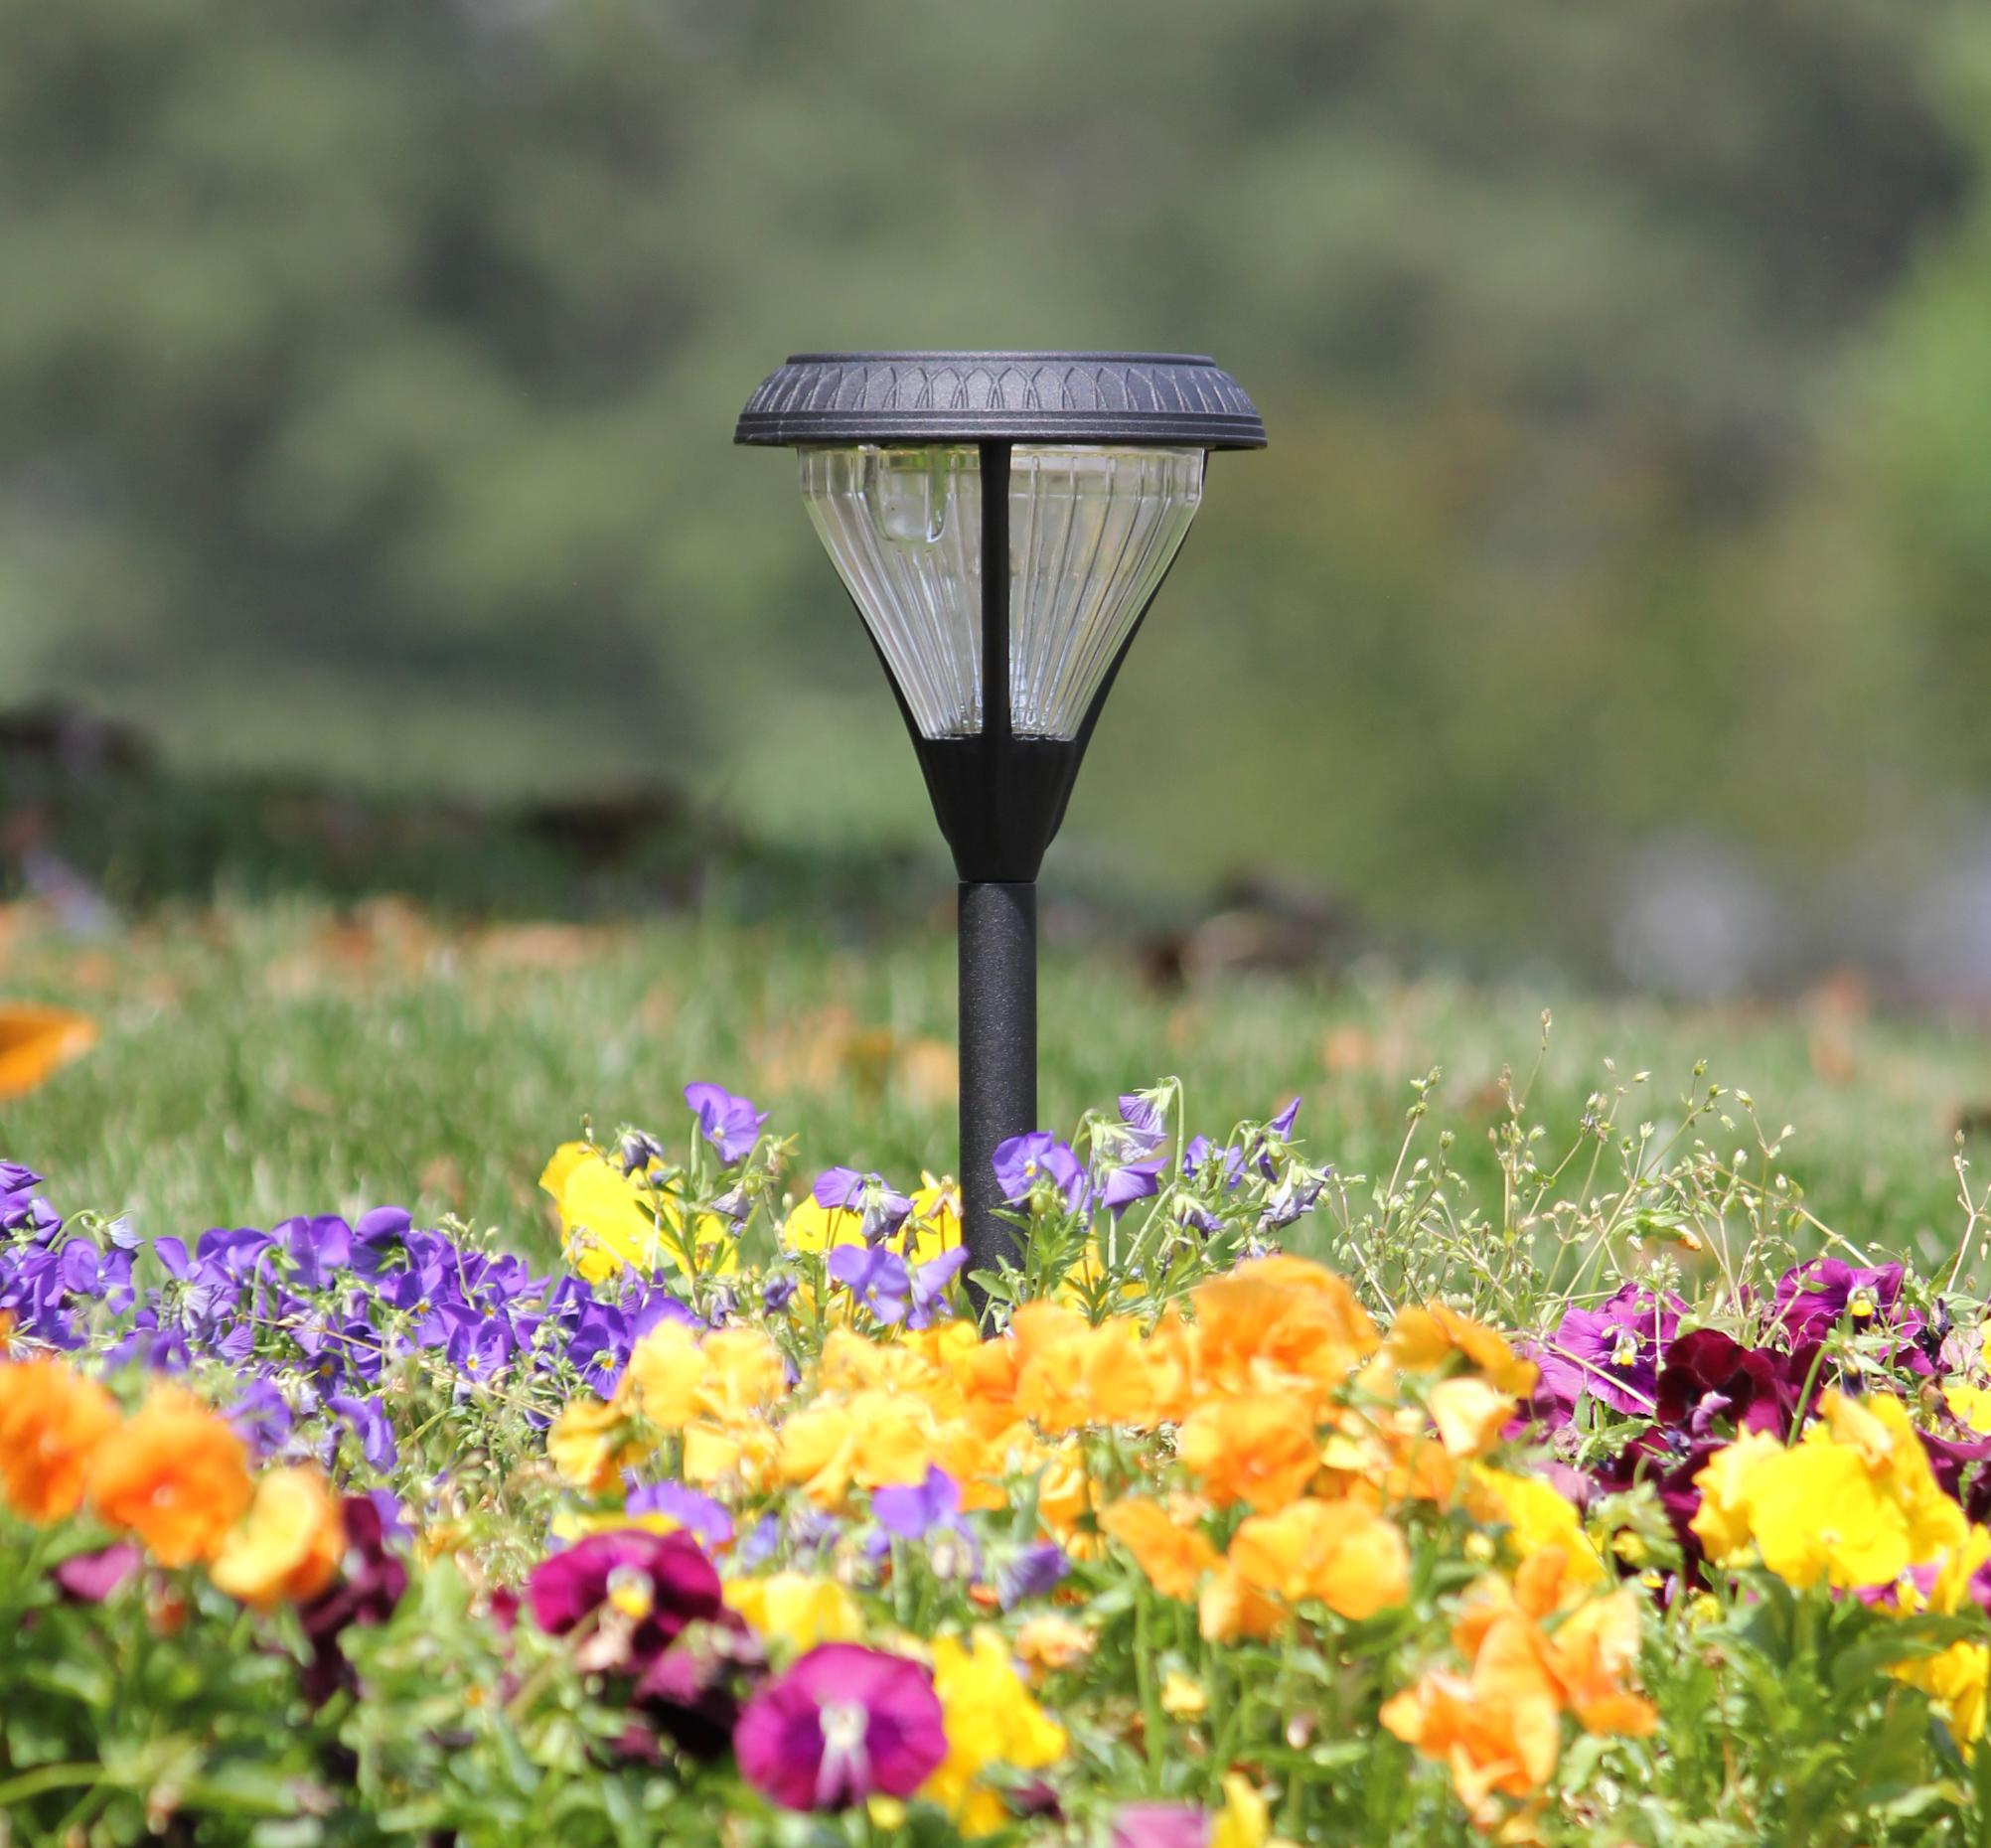 Amazon.com : Gama Sonic Premier Solar Landscape Path and Garden Light